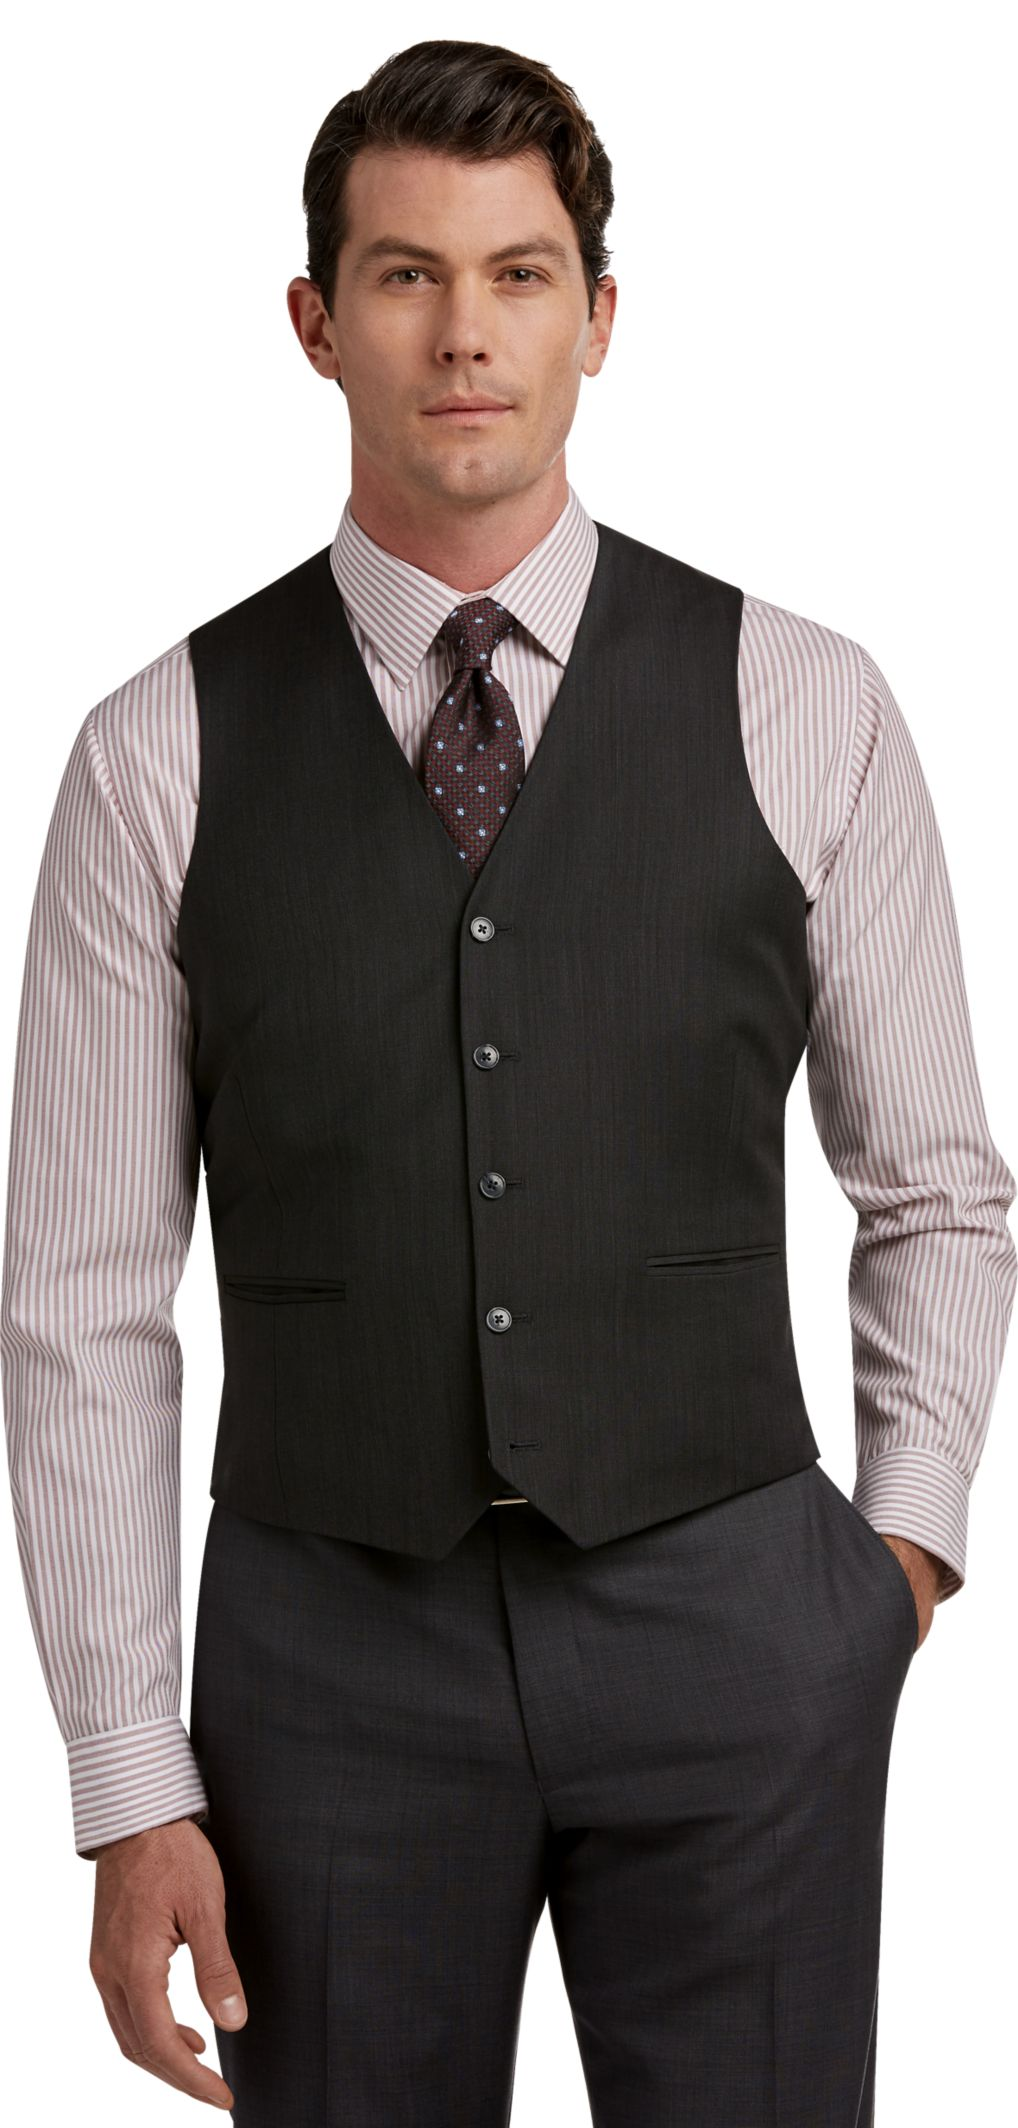 Black Suit Vest Combinations Dress Yy